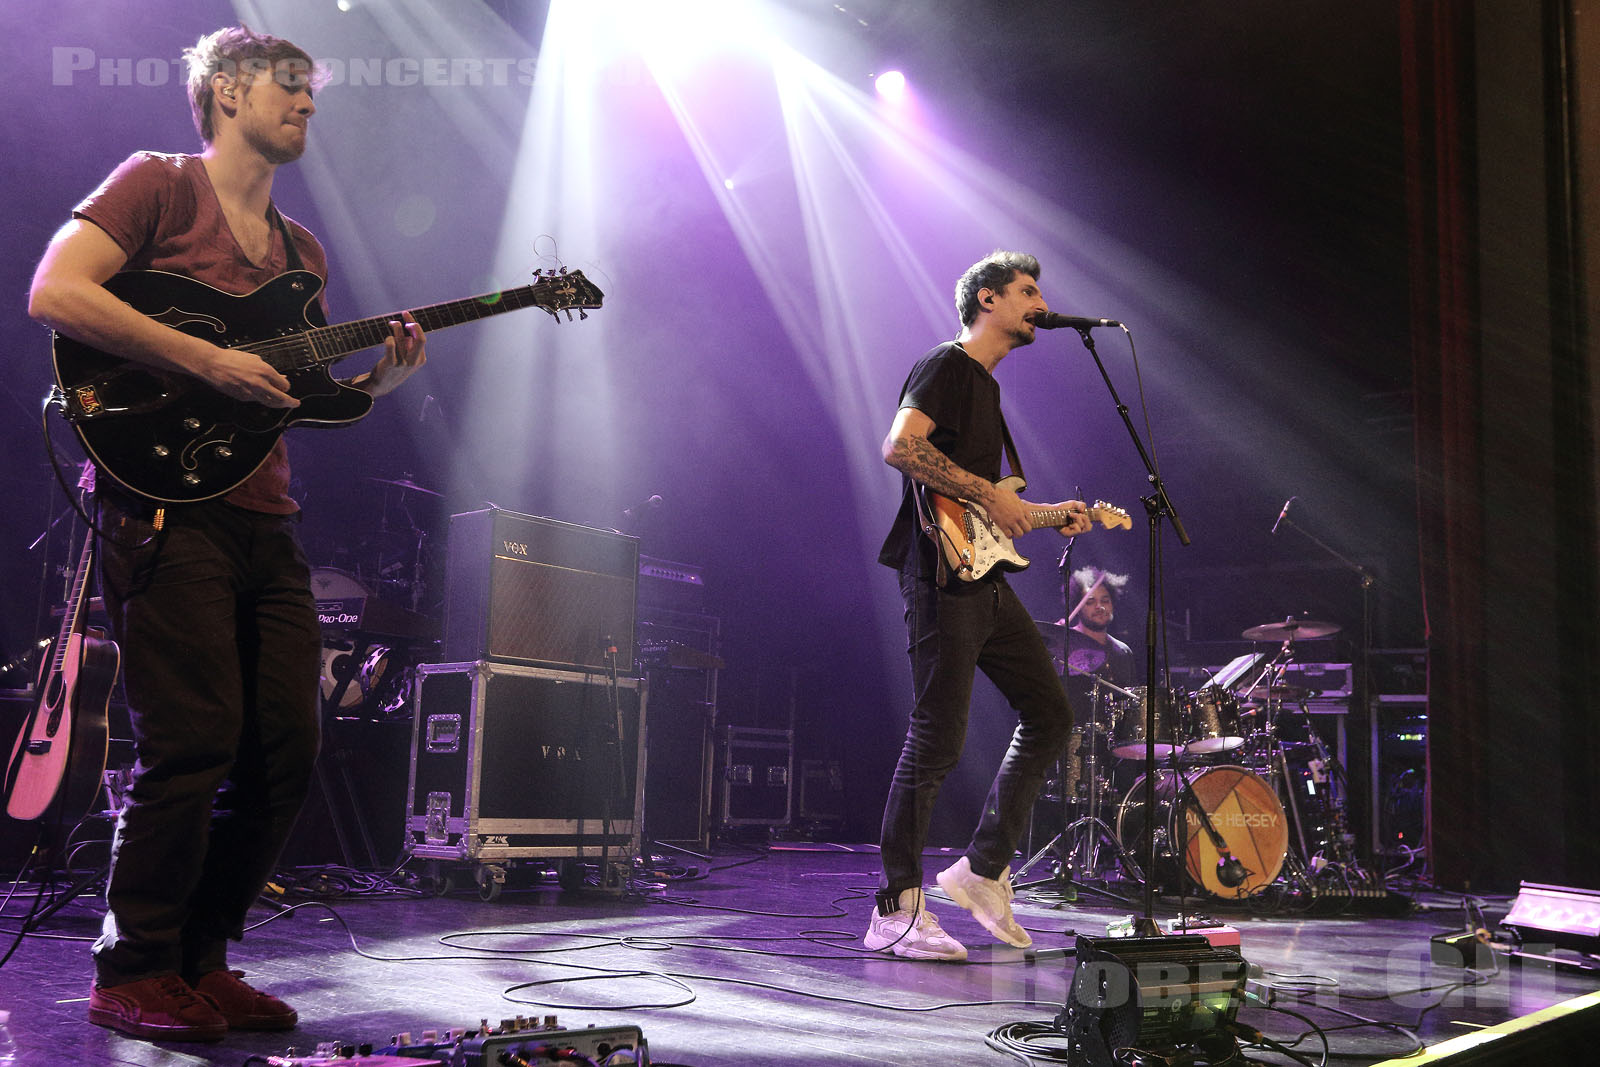 JAMES HERSEY - 2018-11-08 - PARIS - Le Trianon